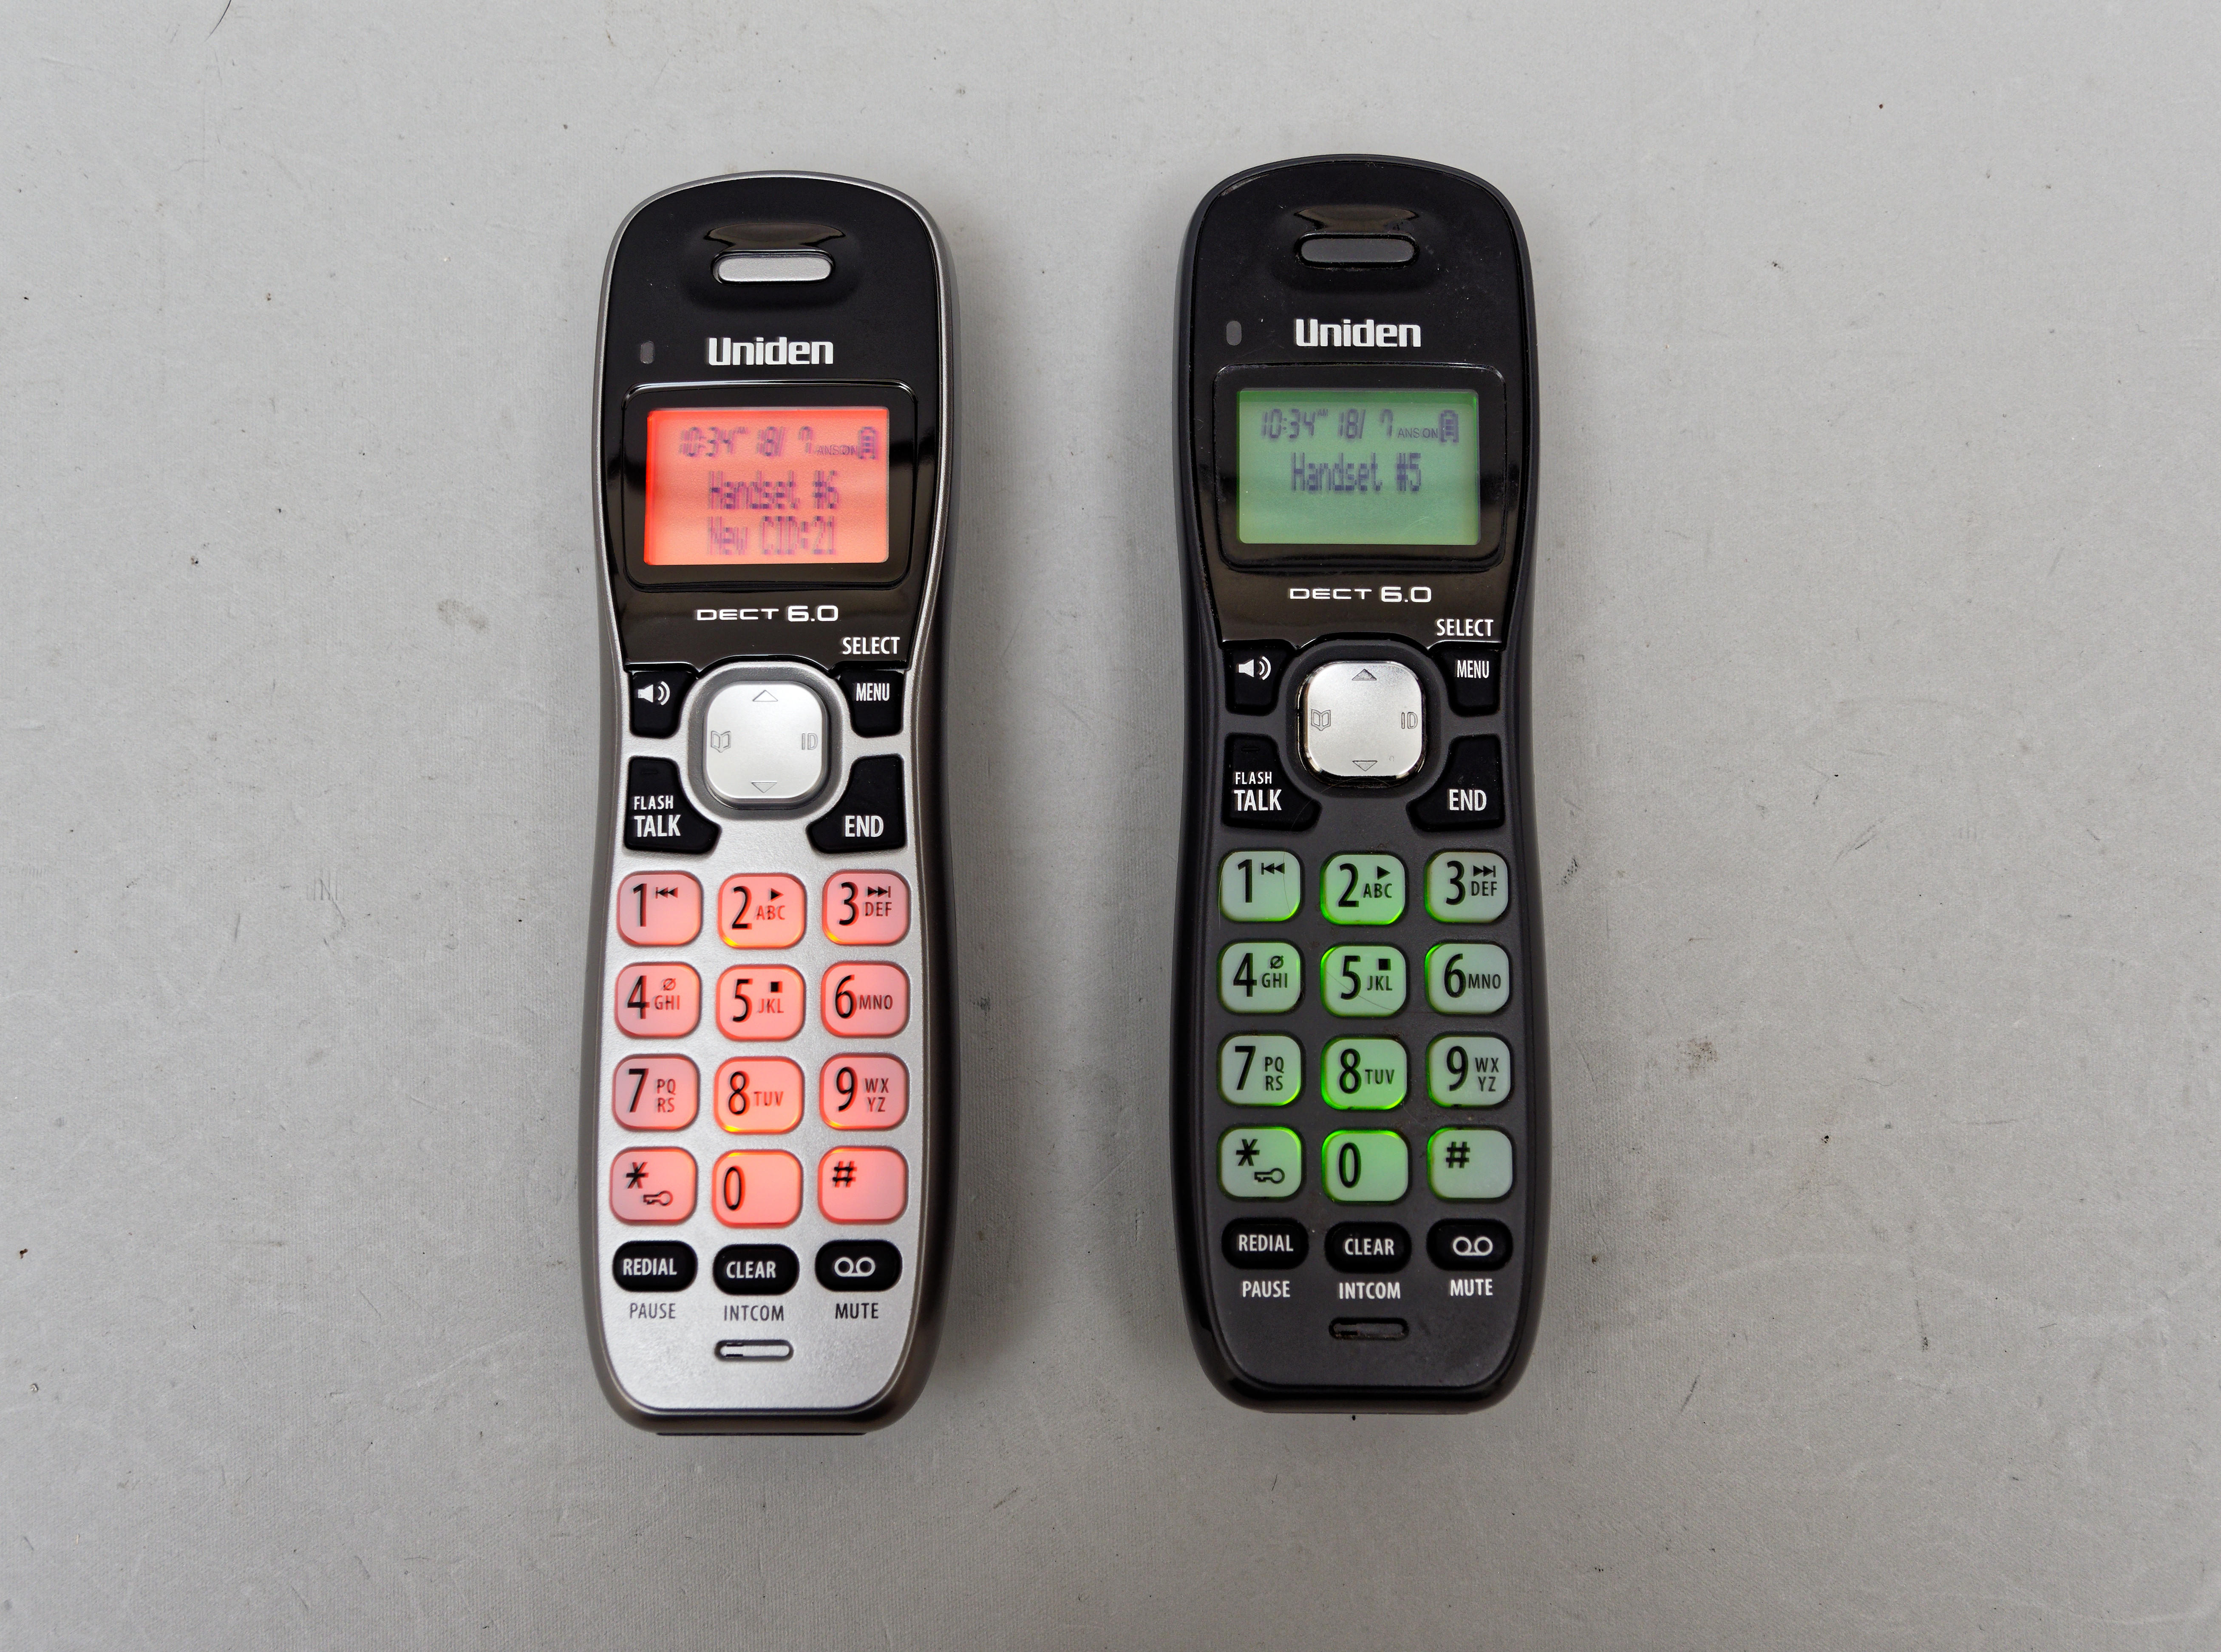 This should be Uniden-phones-2.jpeg.  Is it missing?